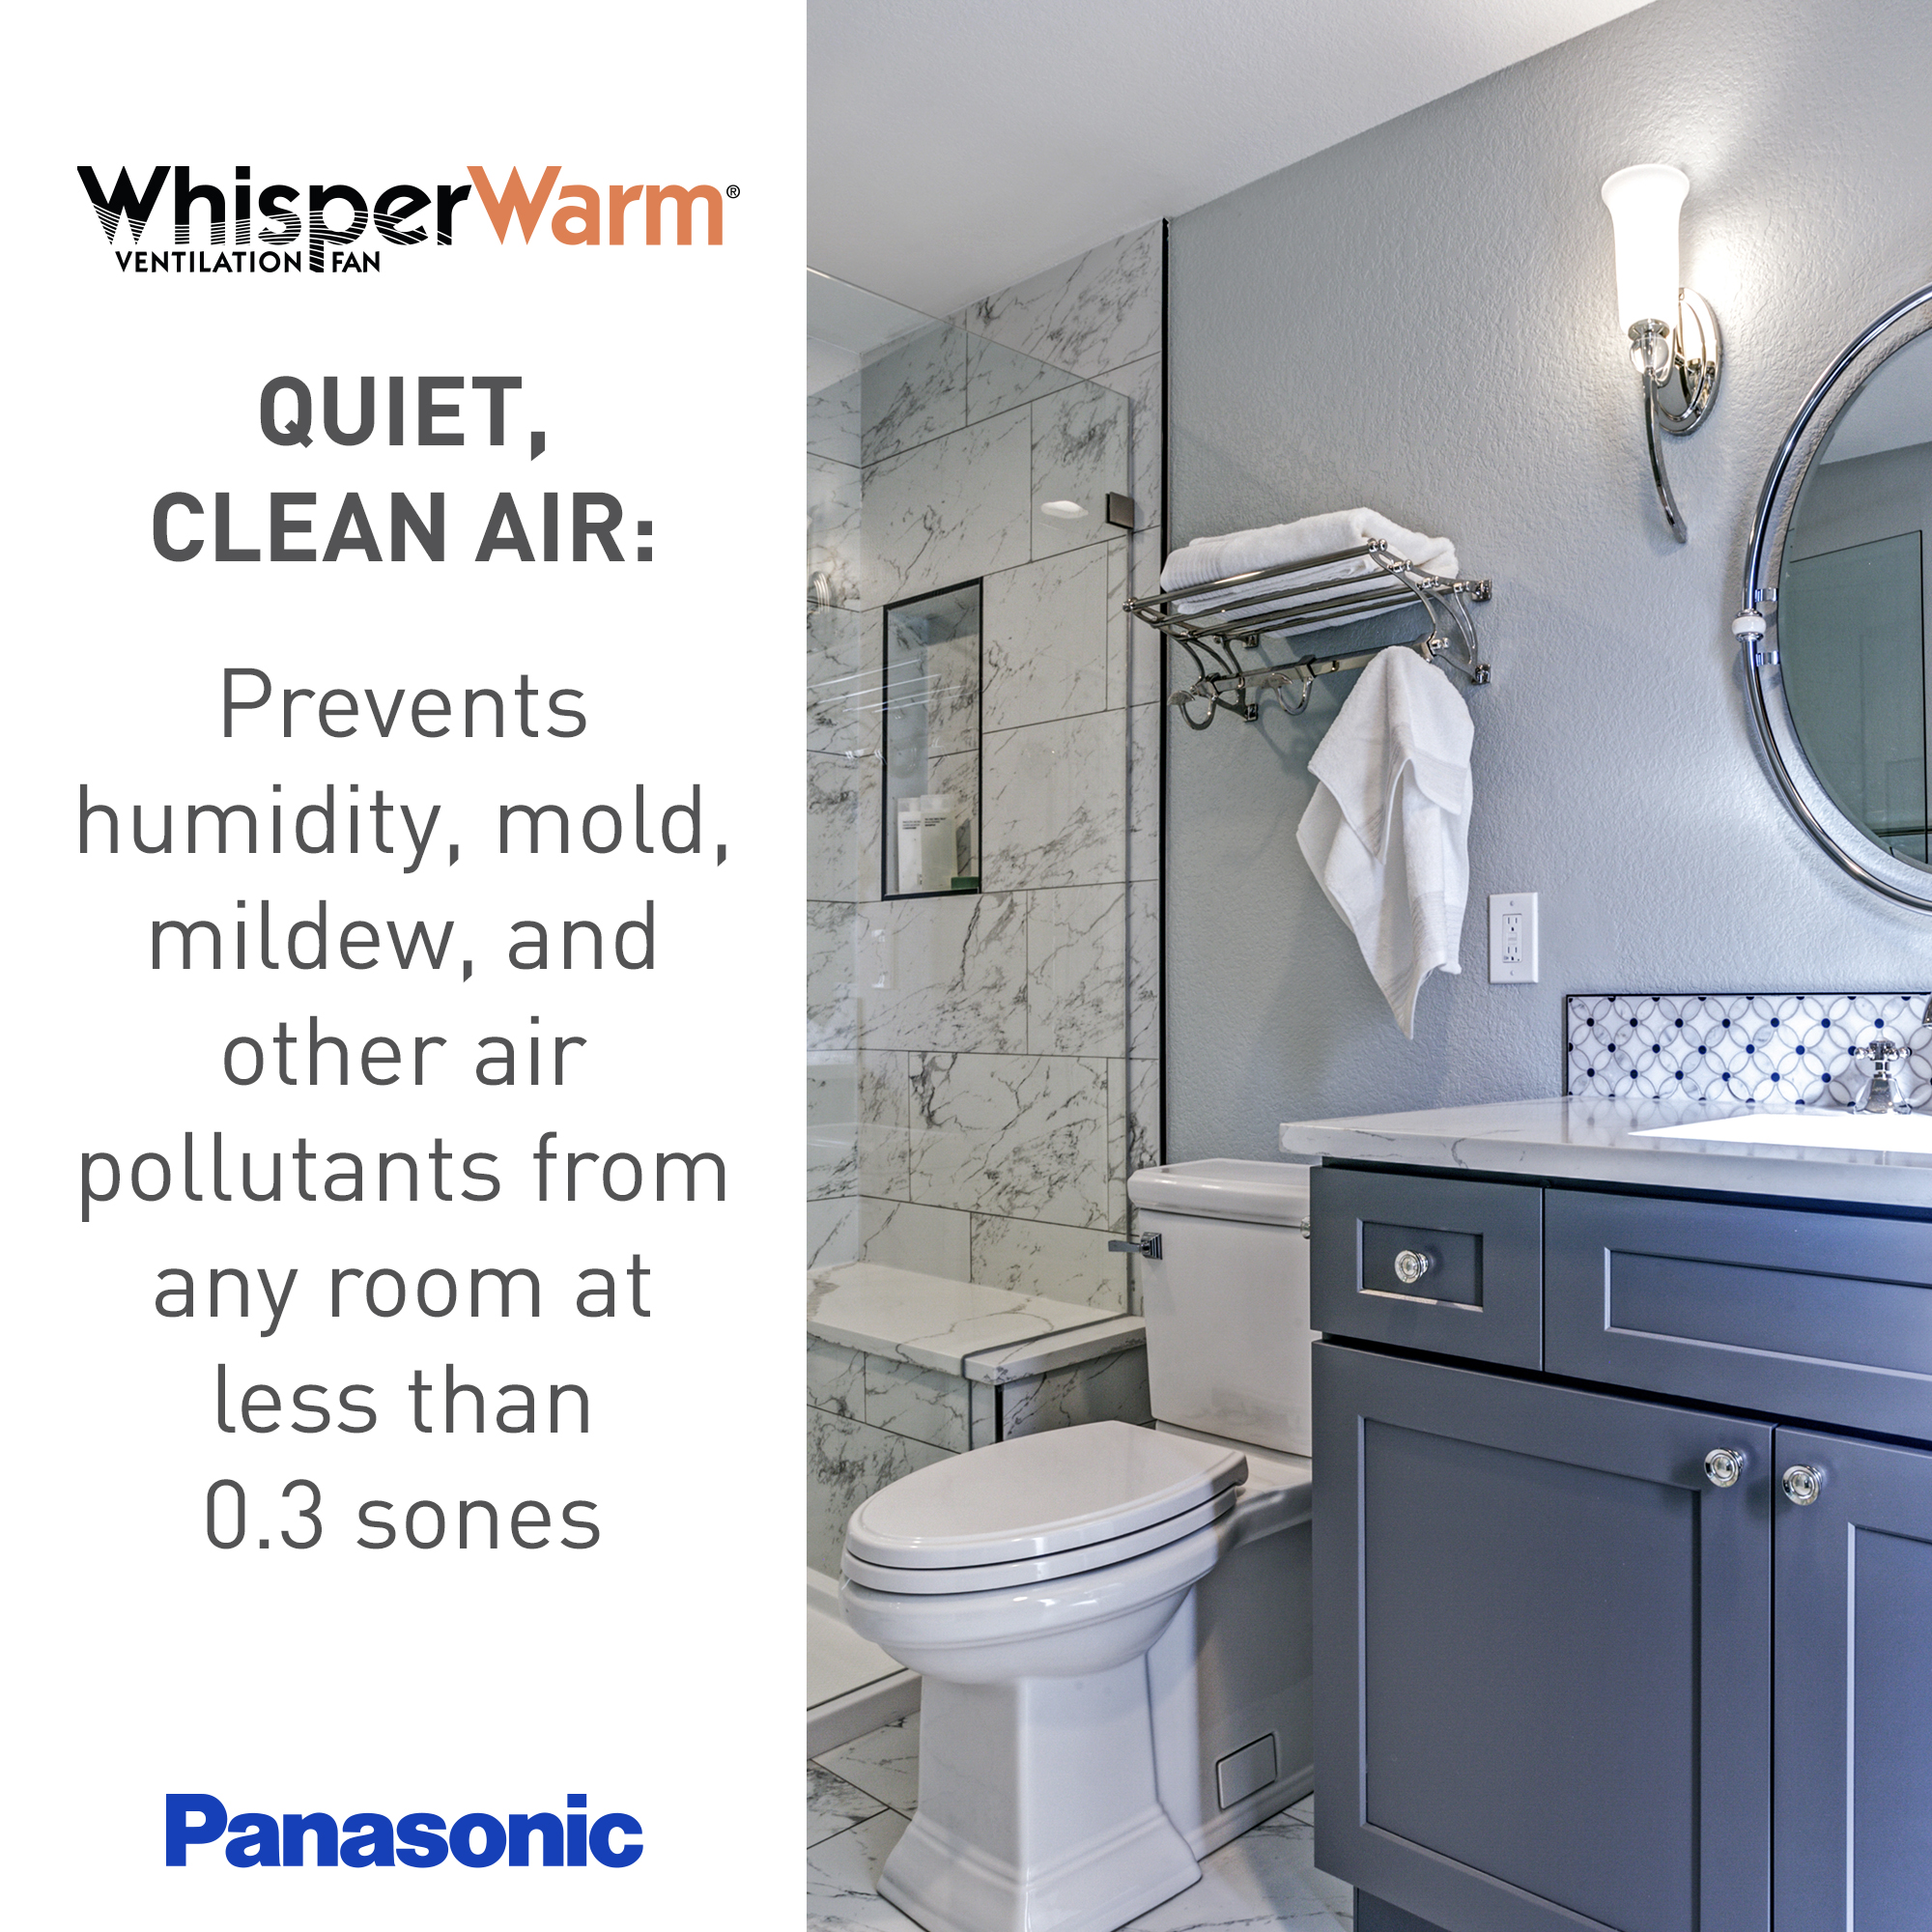 Indoor Air Quality Fans Panasonic, Panasonic Bathroom Exhaust Fan With Light And Heater